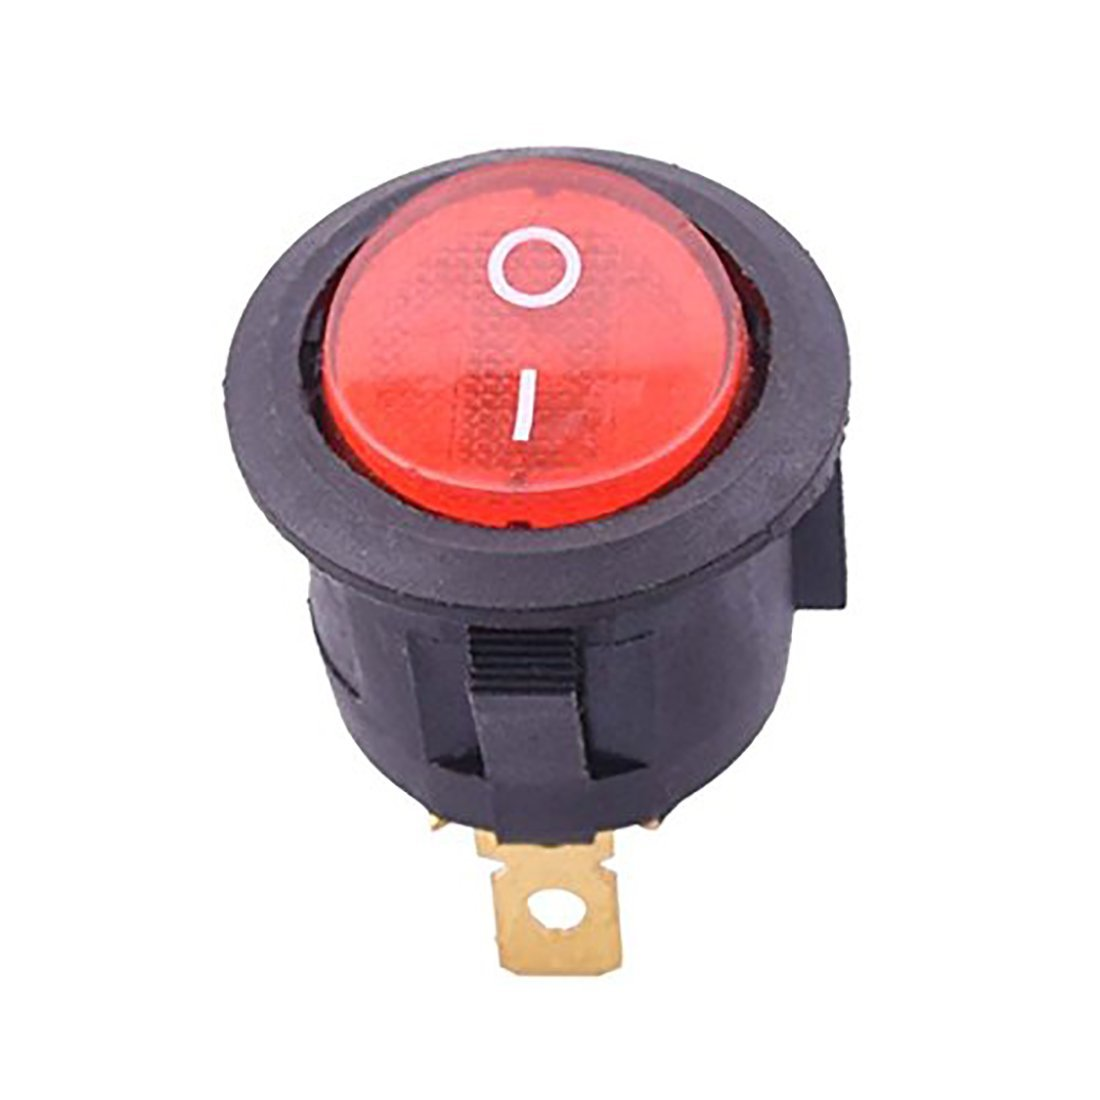 Flyshop 5 pcs Red Round Button 3 Pin SPST On/Off Rocker Switch AC 125V/10A 250V/6A